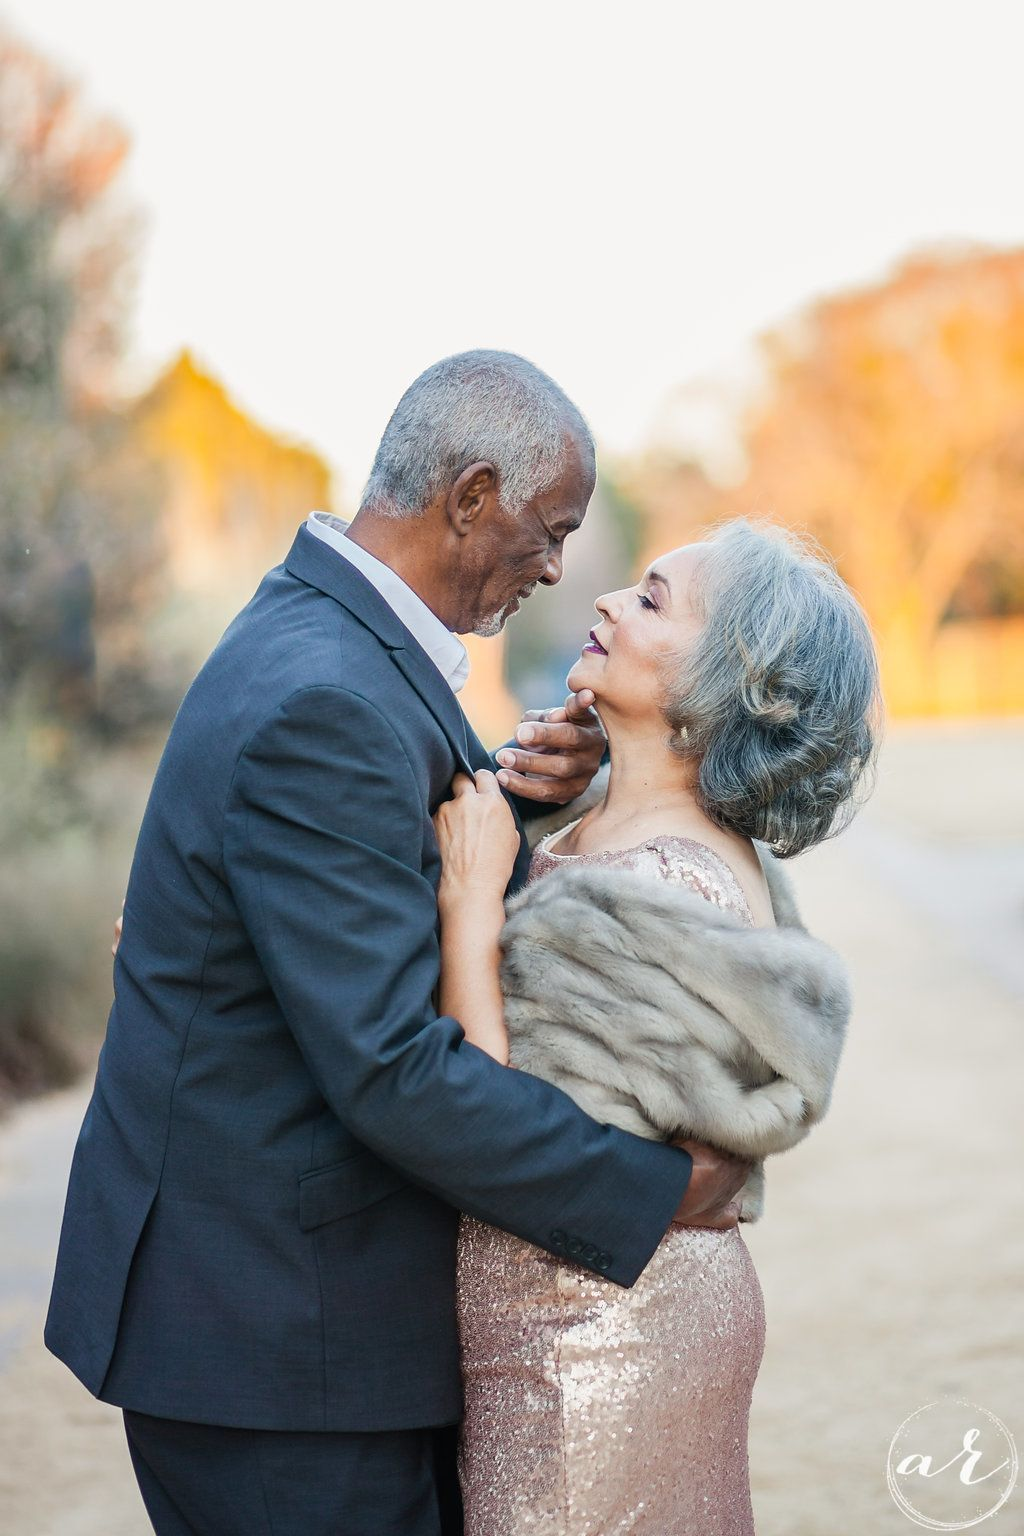 Couple married for 47 years goes viral with glam photo